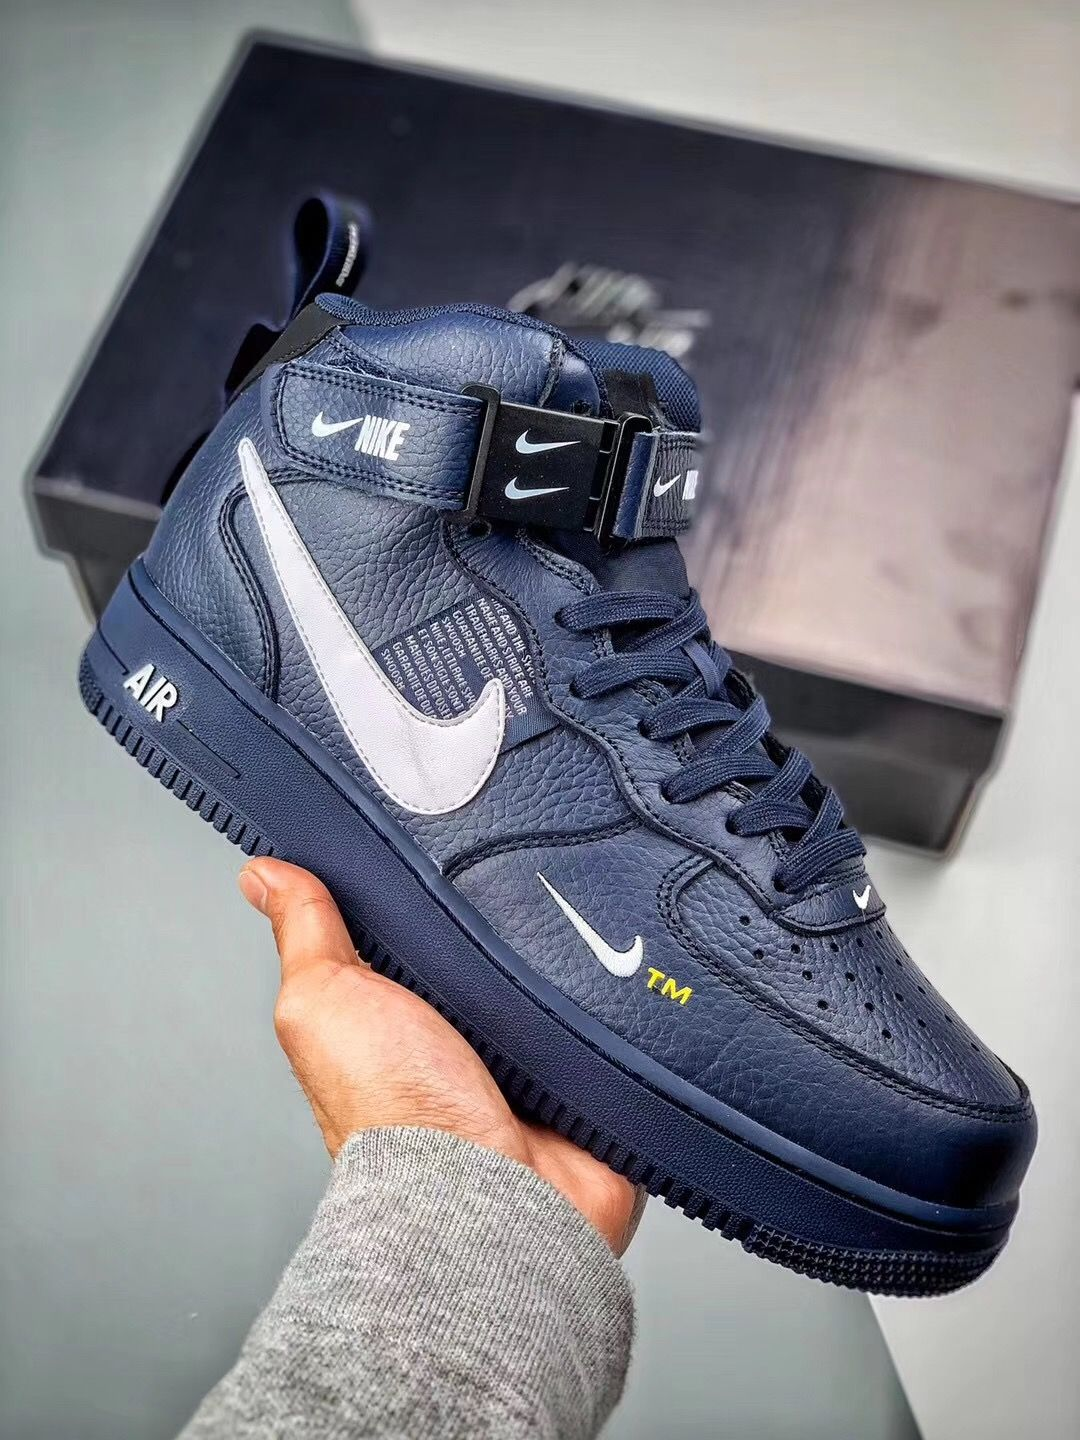 Nike Air Force 1 One Mid LV8 Utility Grey White Black 804609